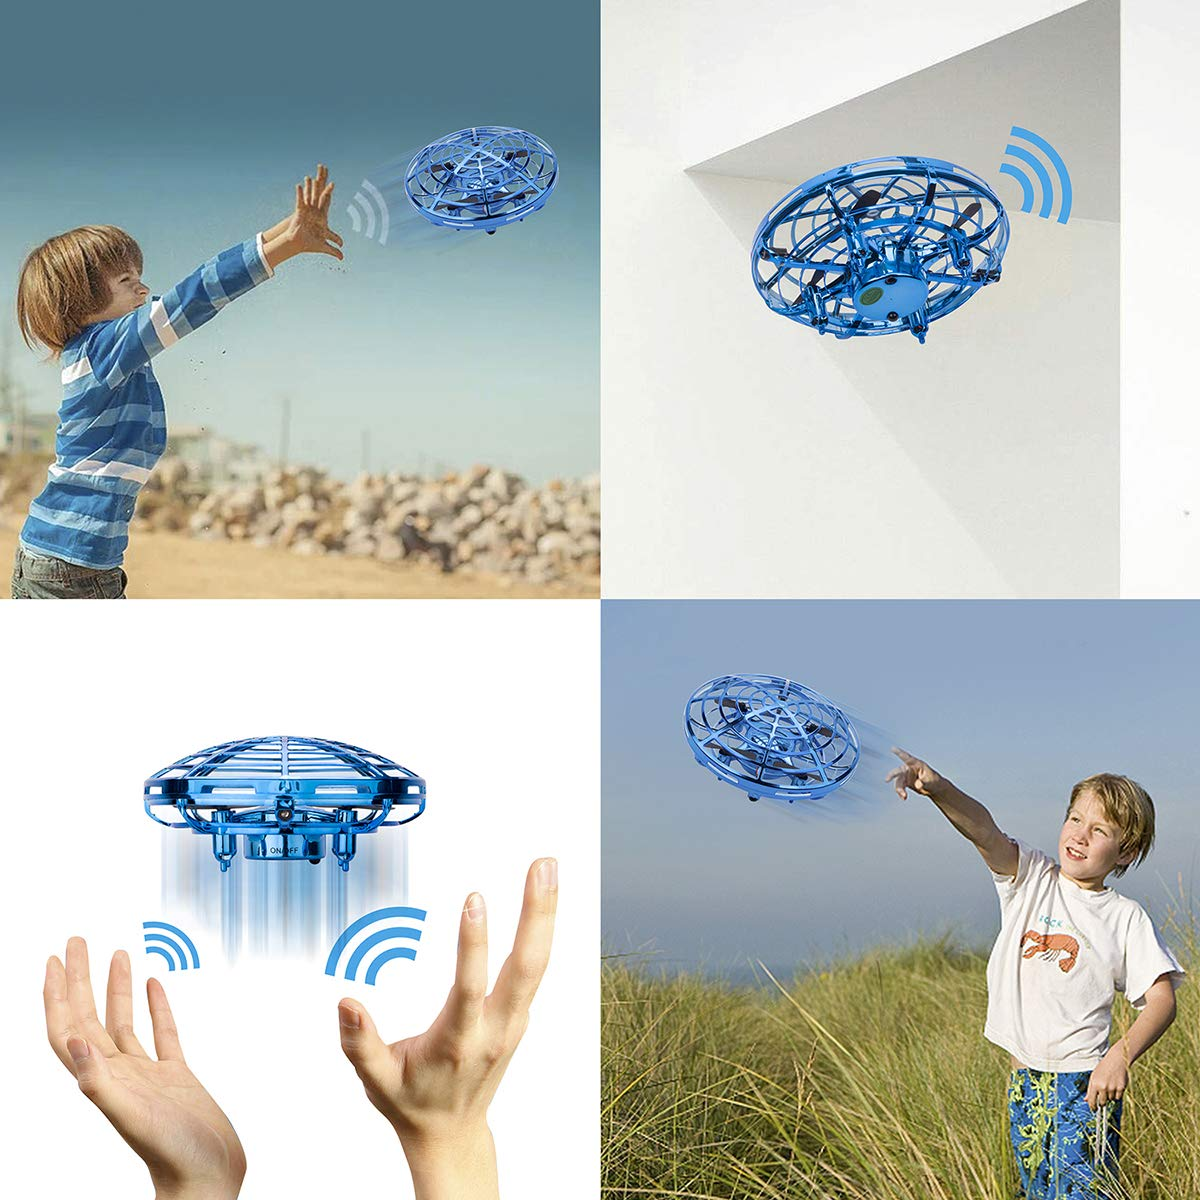 Flying Ball Toy - Sugoiti Mini Drones Quadcopters UFO Aircraft Motion Hand Controlled, Interactive Infrared Induction RC Helicopter with Led Light, Free Hover Automatic Sensing Obstacle, Gift for Kids by Sugoiti (Image #3)